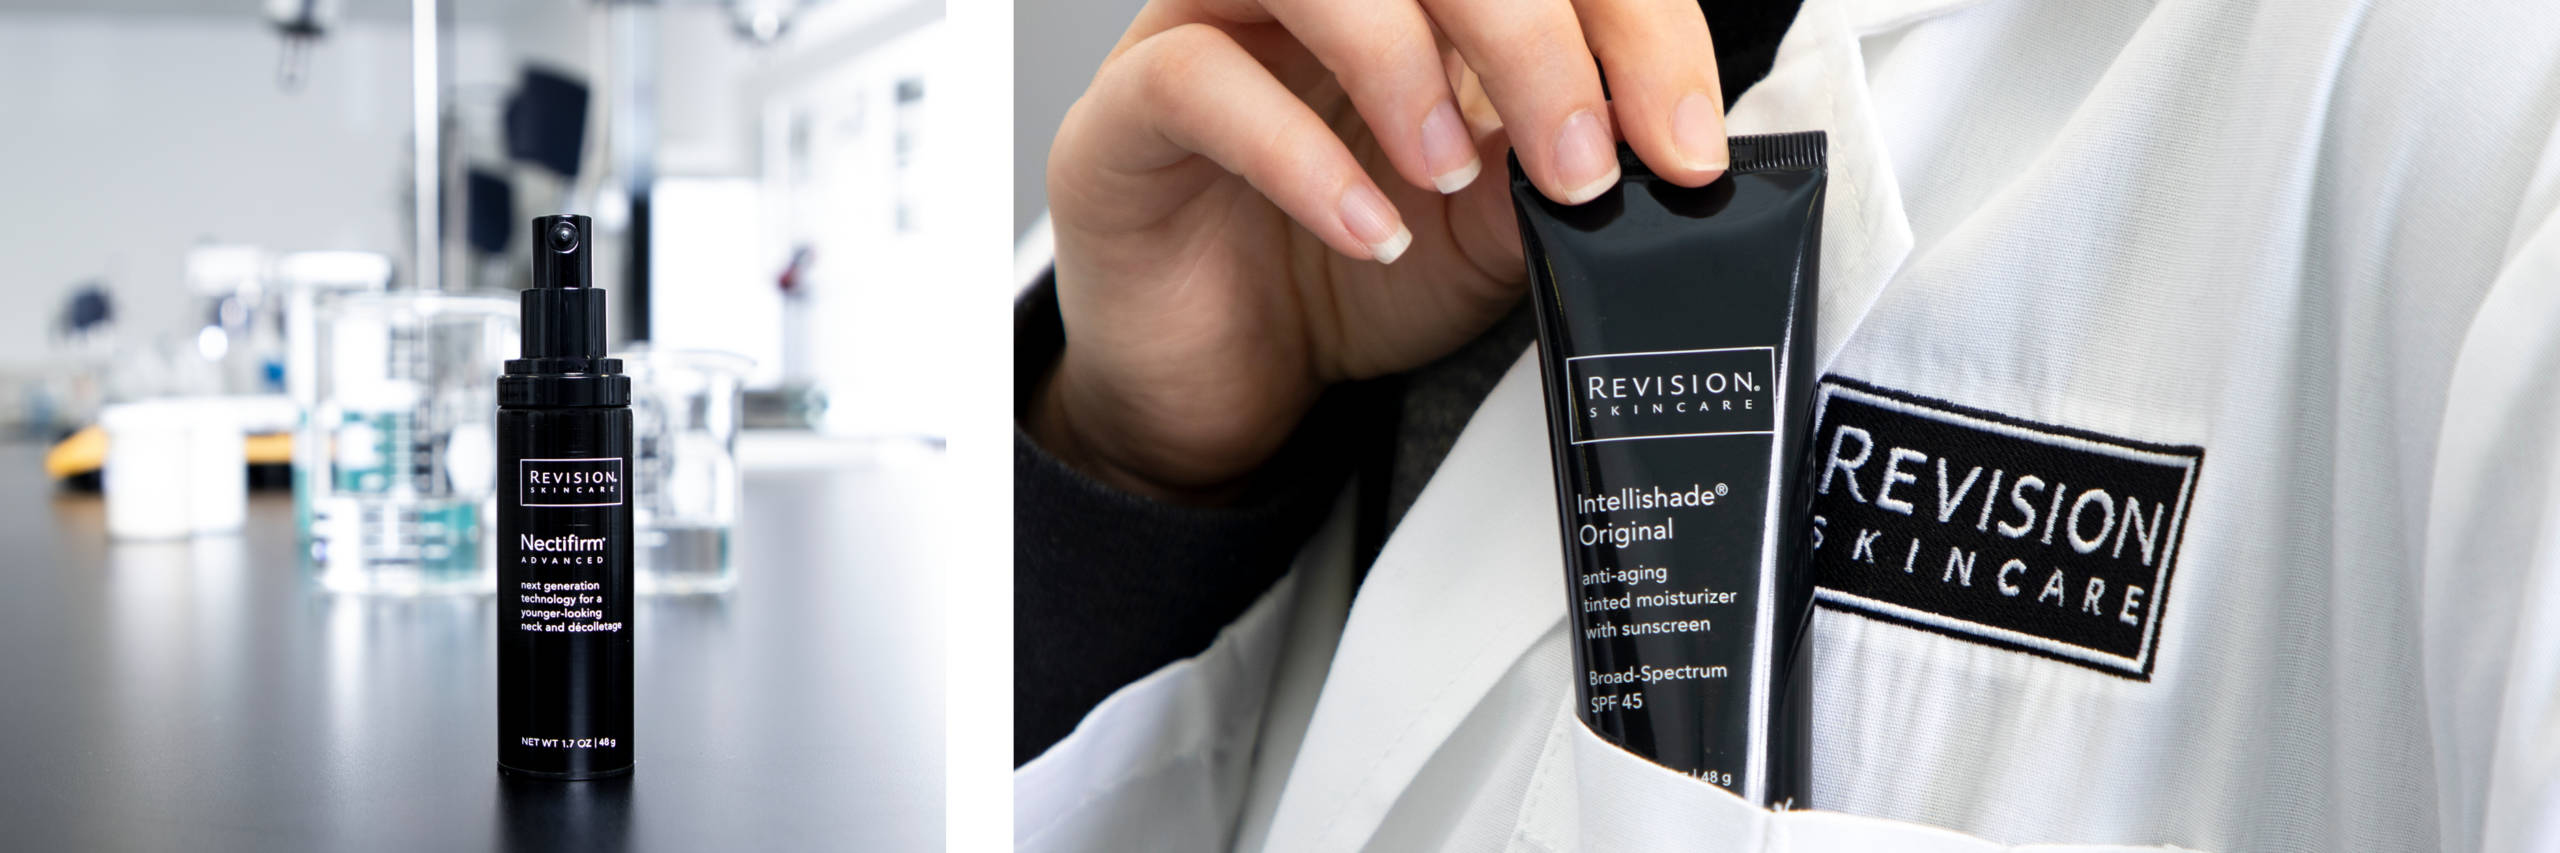 Revision Skincare header. Revision Skincare products available at Skin Renewal Systems